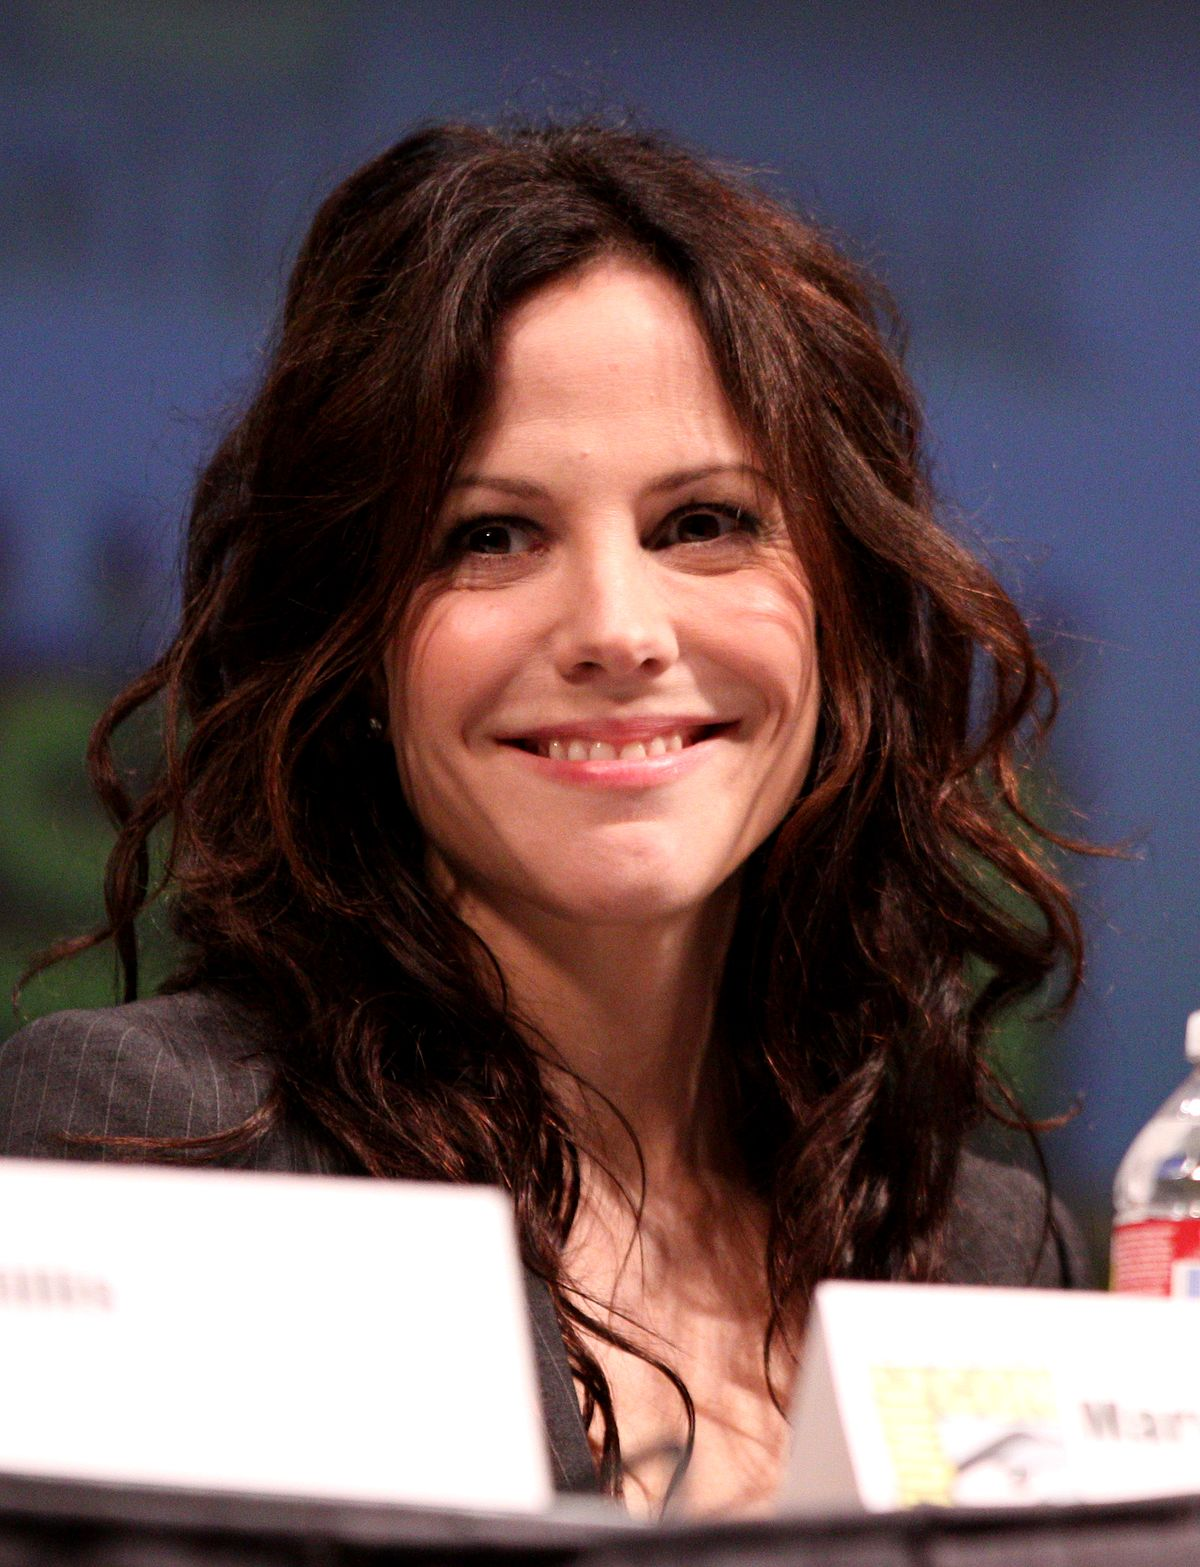 mary-louise parker - wikipedia